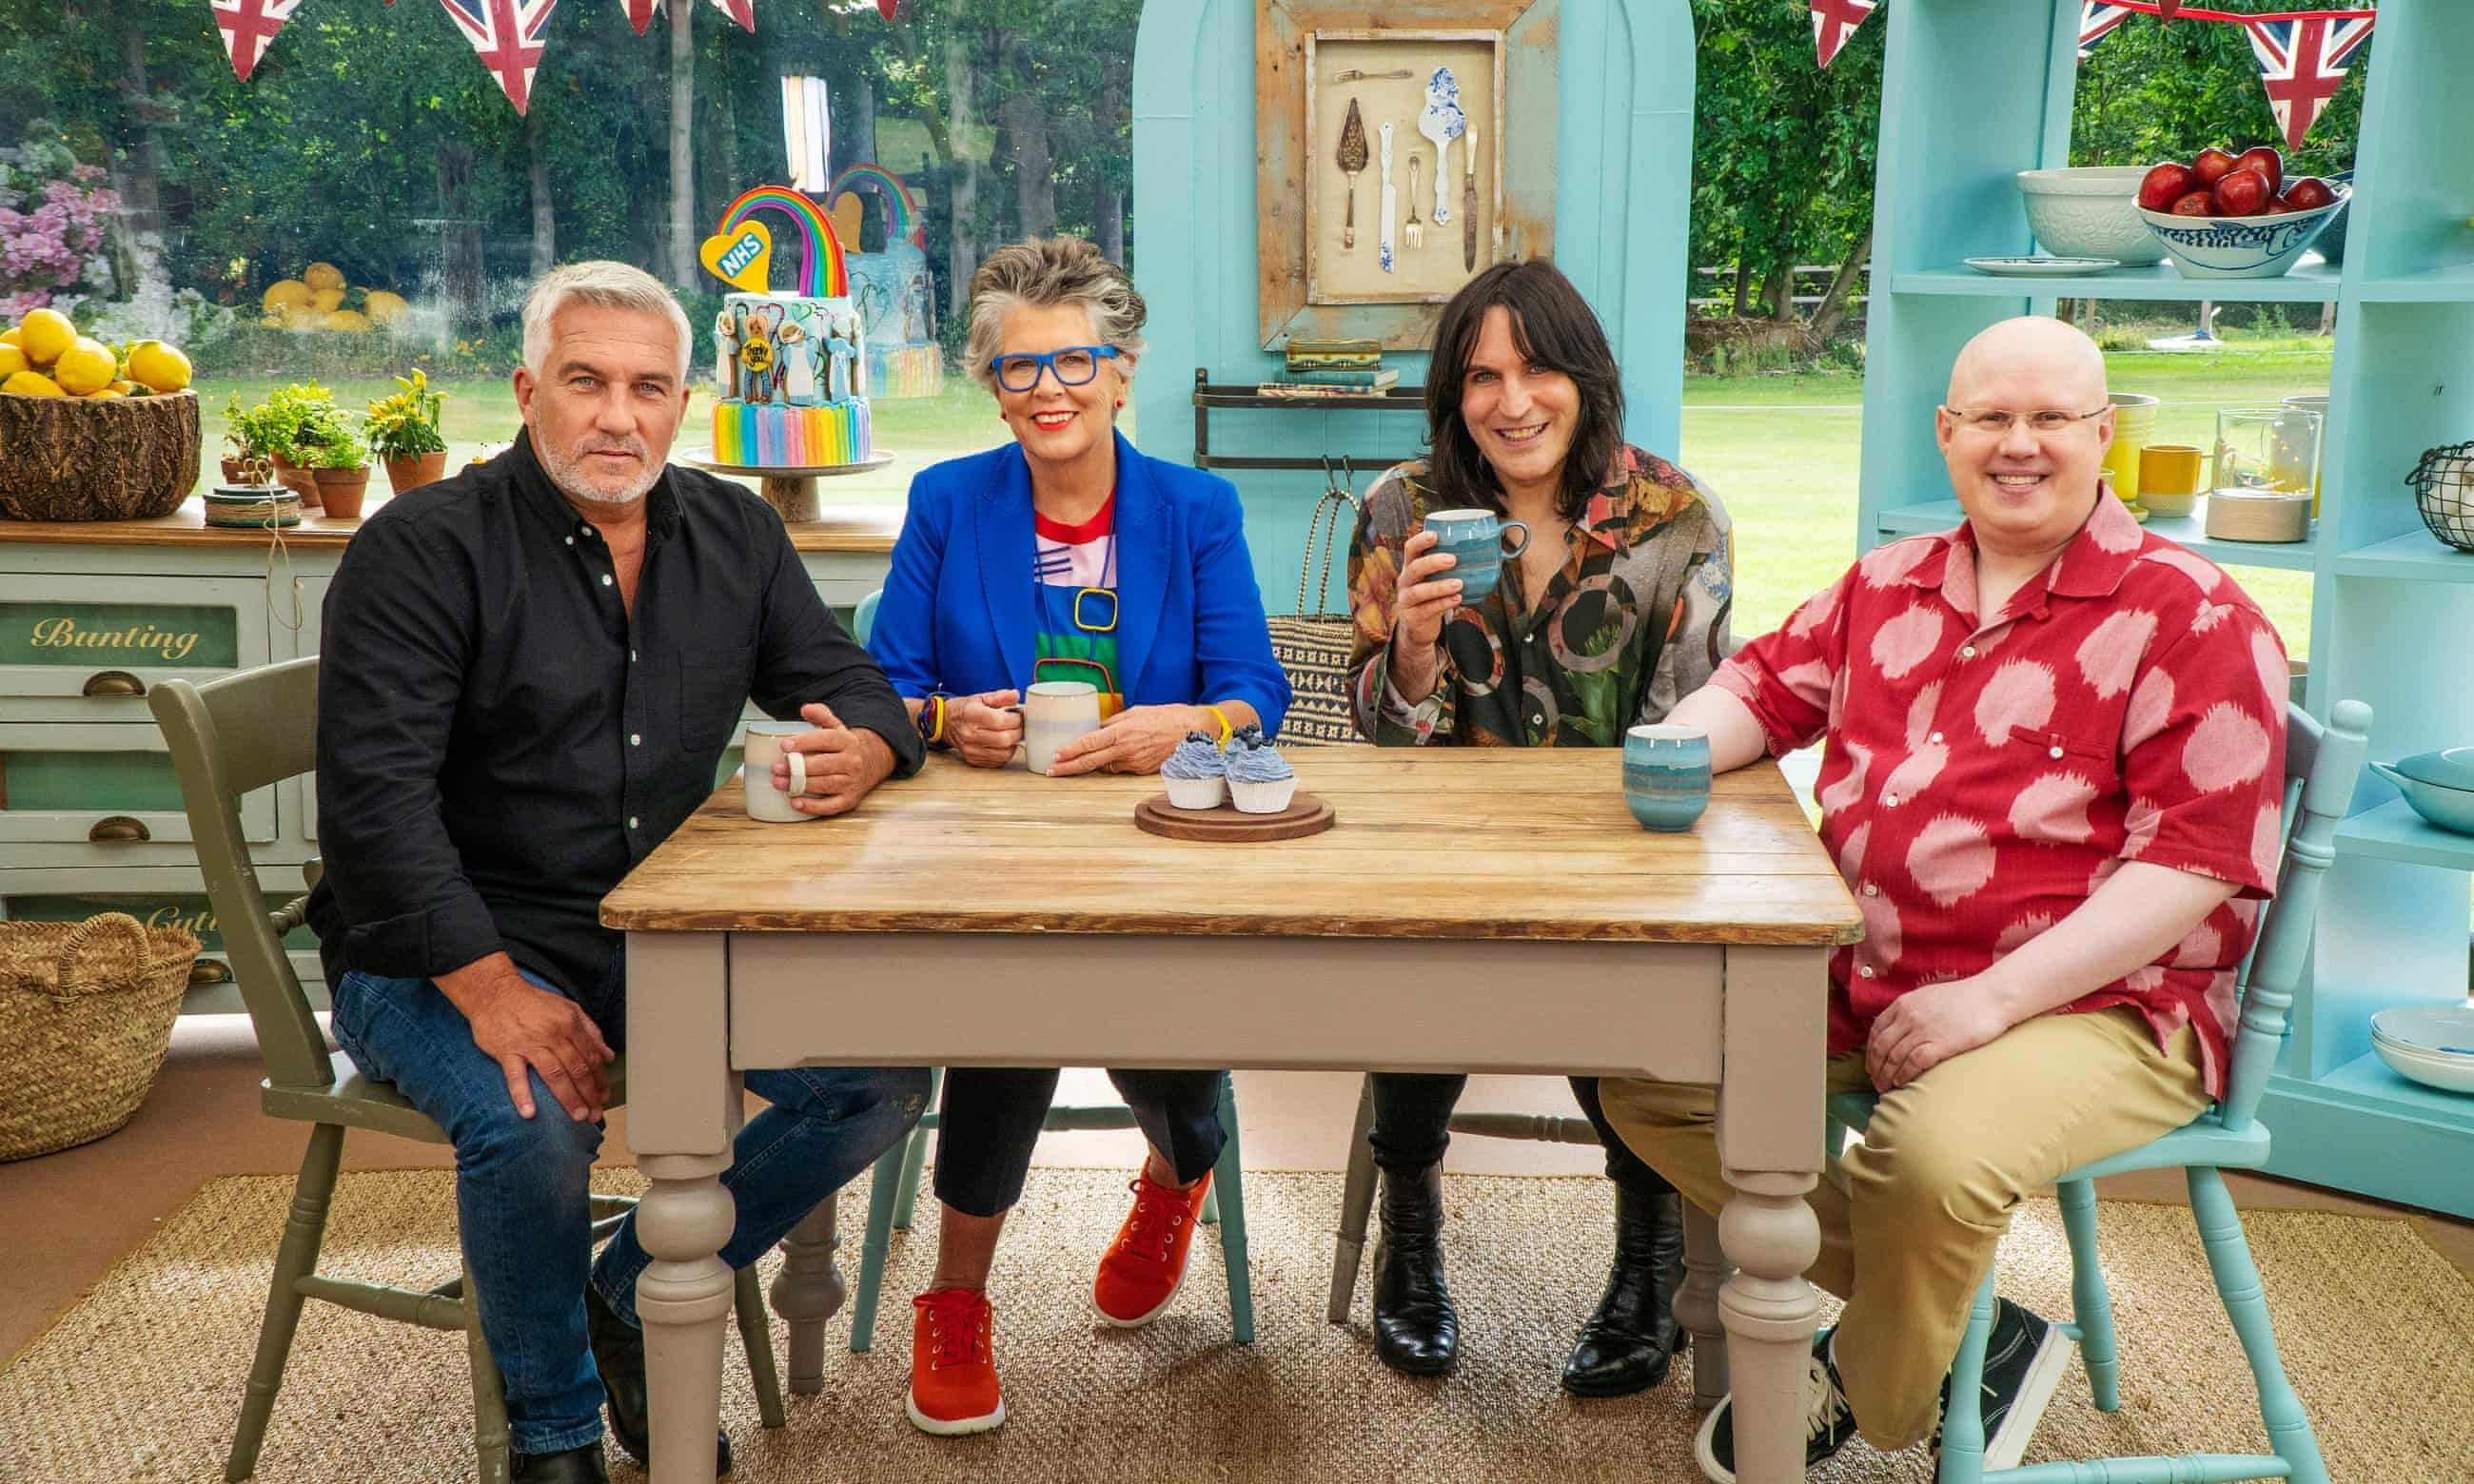 This Bake Off contestant is running the Virtual London Marathon next weekend